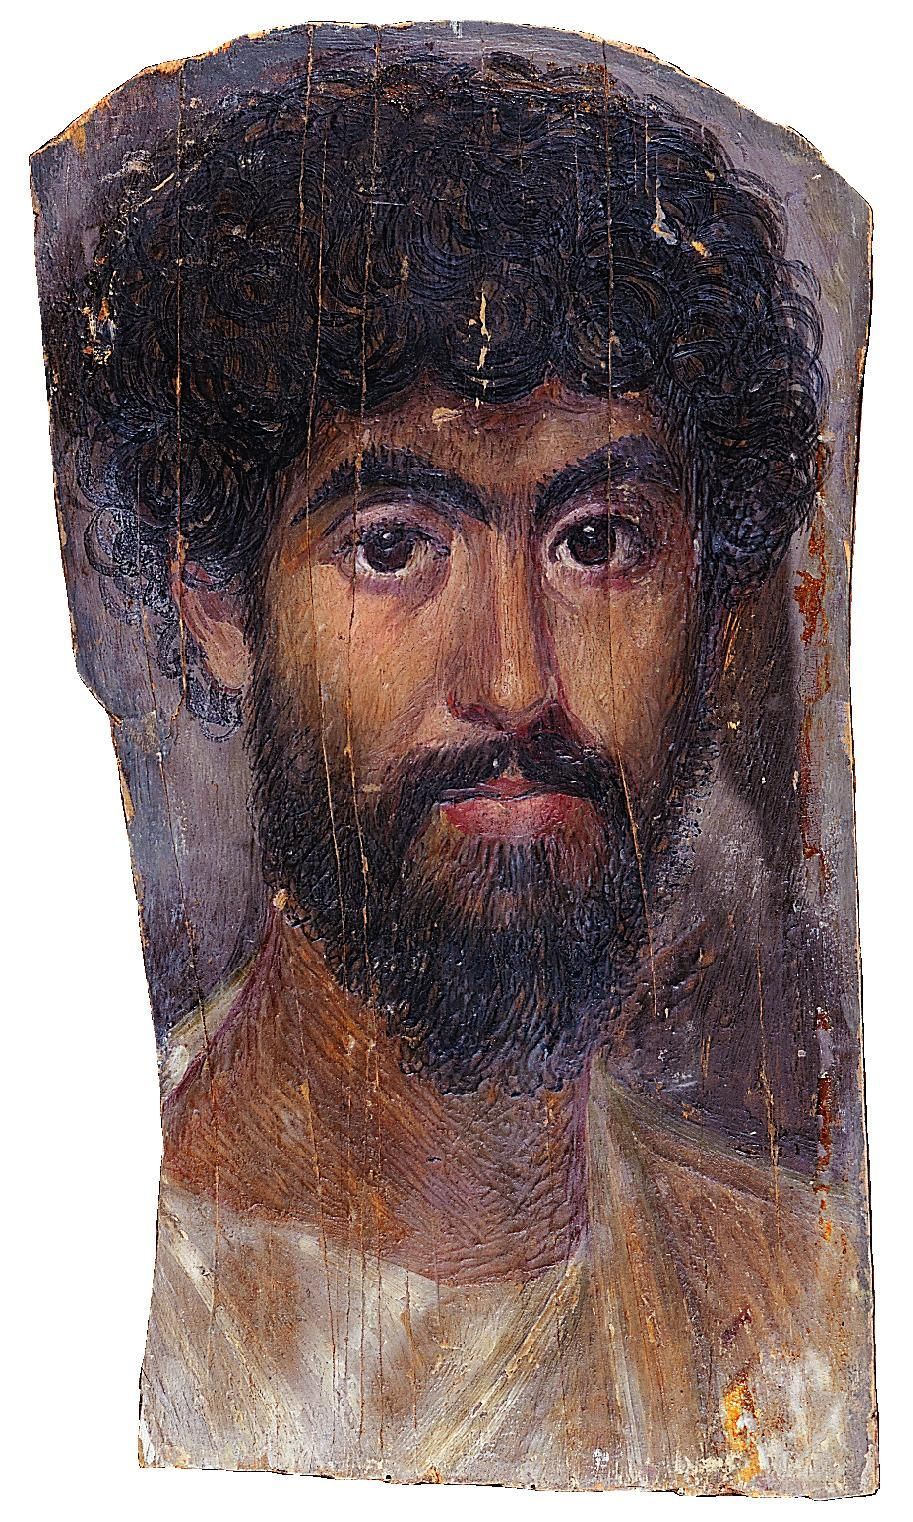 Pittura Romana Fayum Mummy Portrait Of A Man Tinted Wax On Wood From Faiyum Egypt